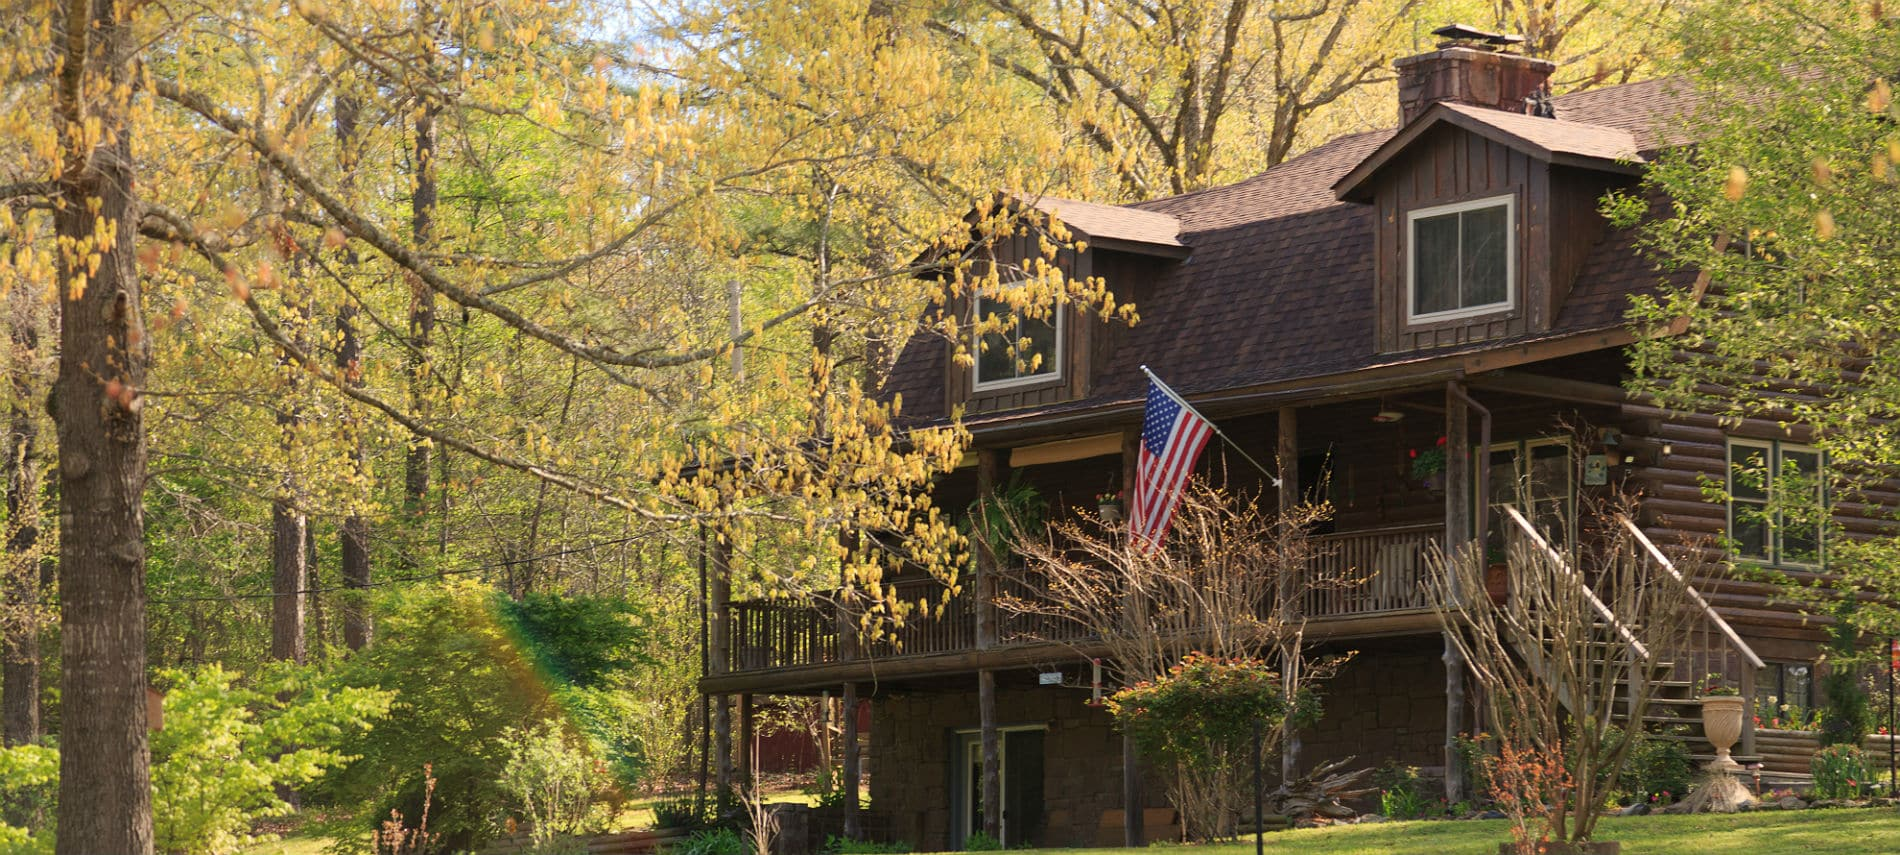 Exterior of the inn with a large front porch, log siding and an American flag hanging from the front post.